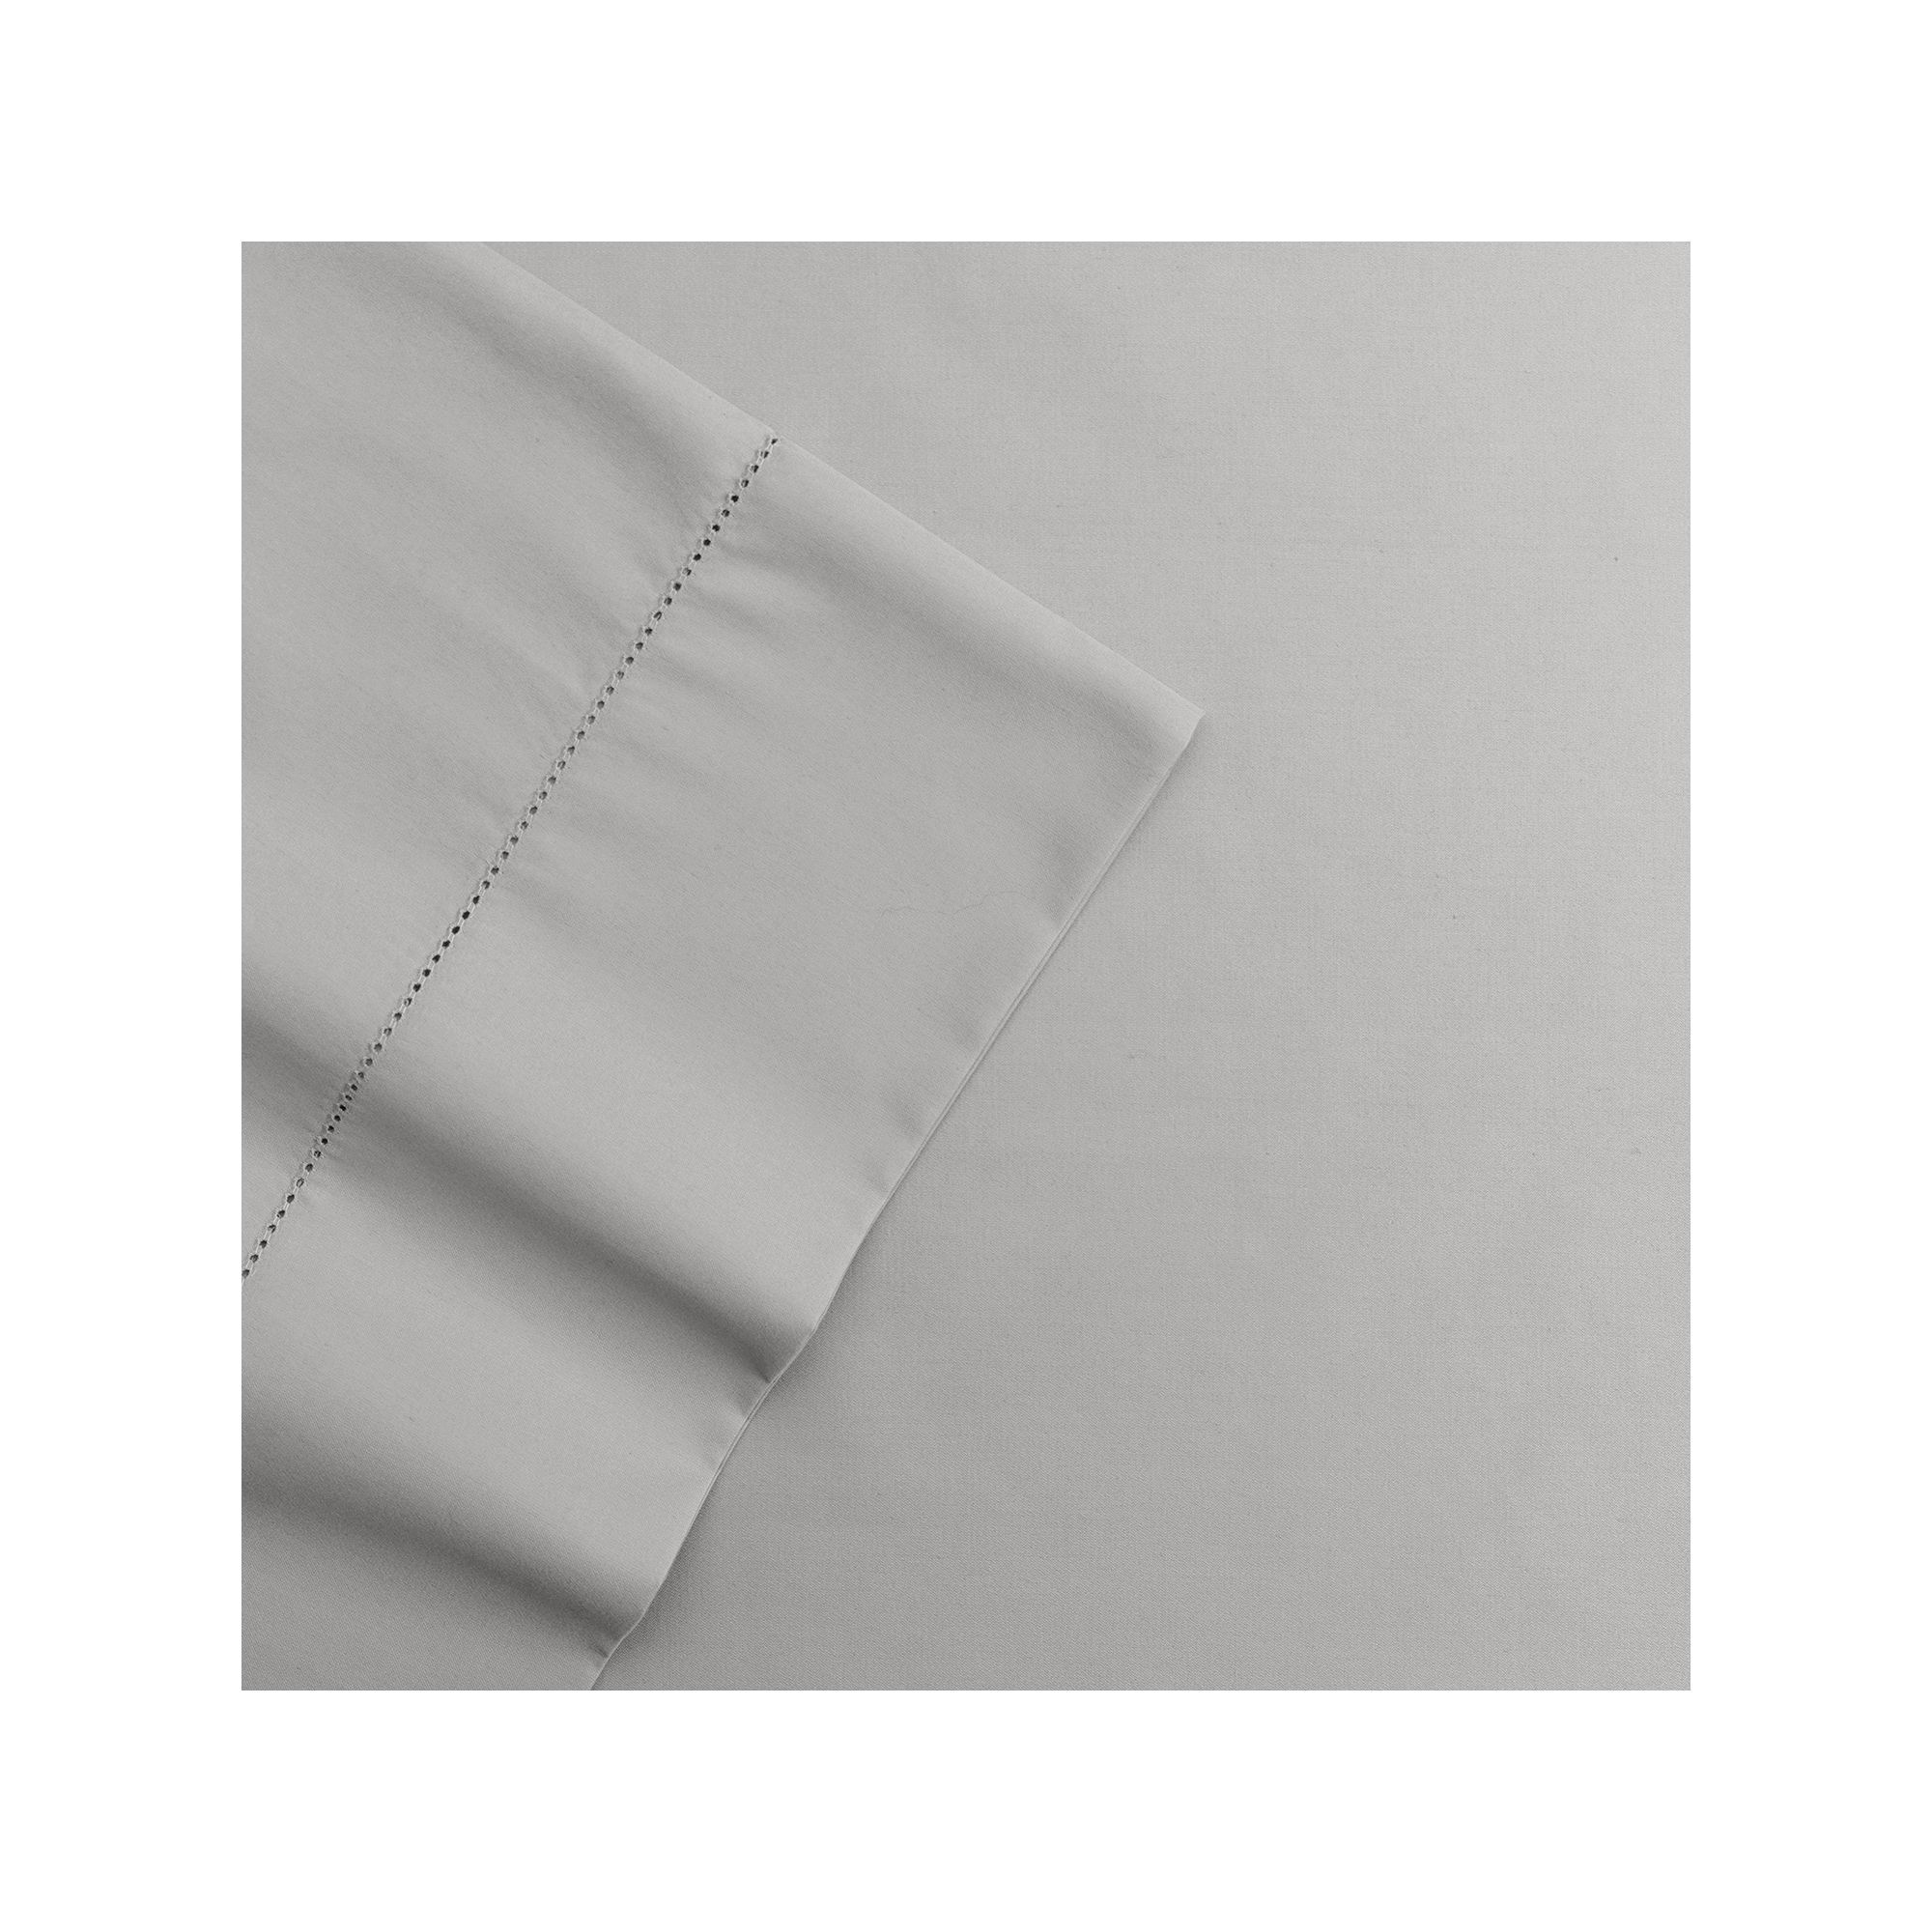 Chaps Damask Solid 2 Pack Pillowcases Sheet Sets Damask Green Queen